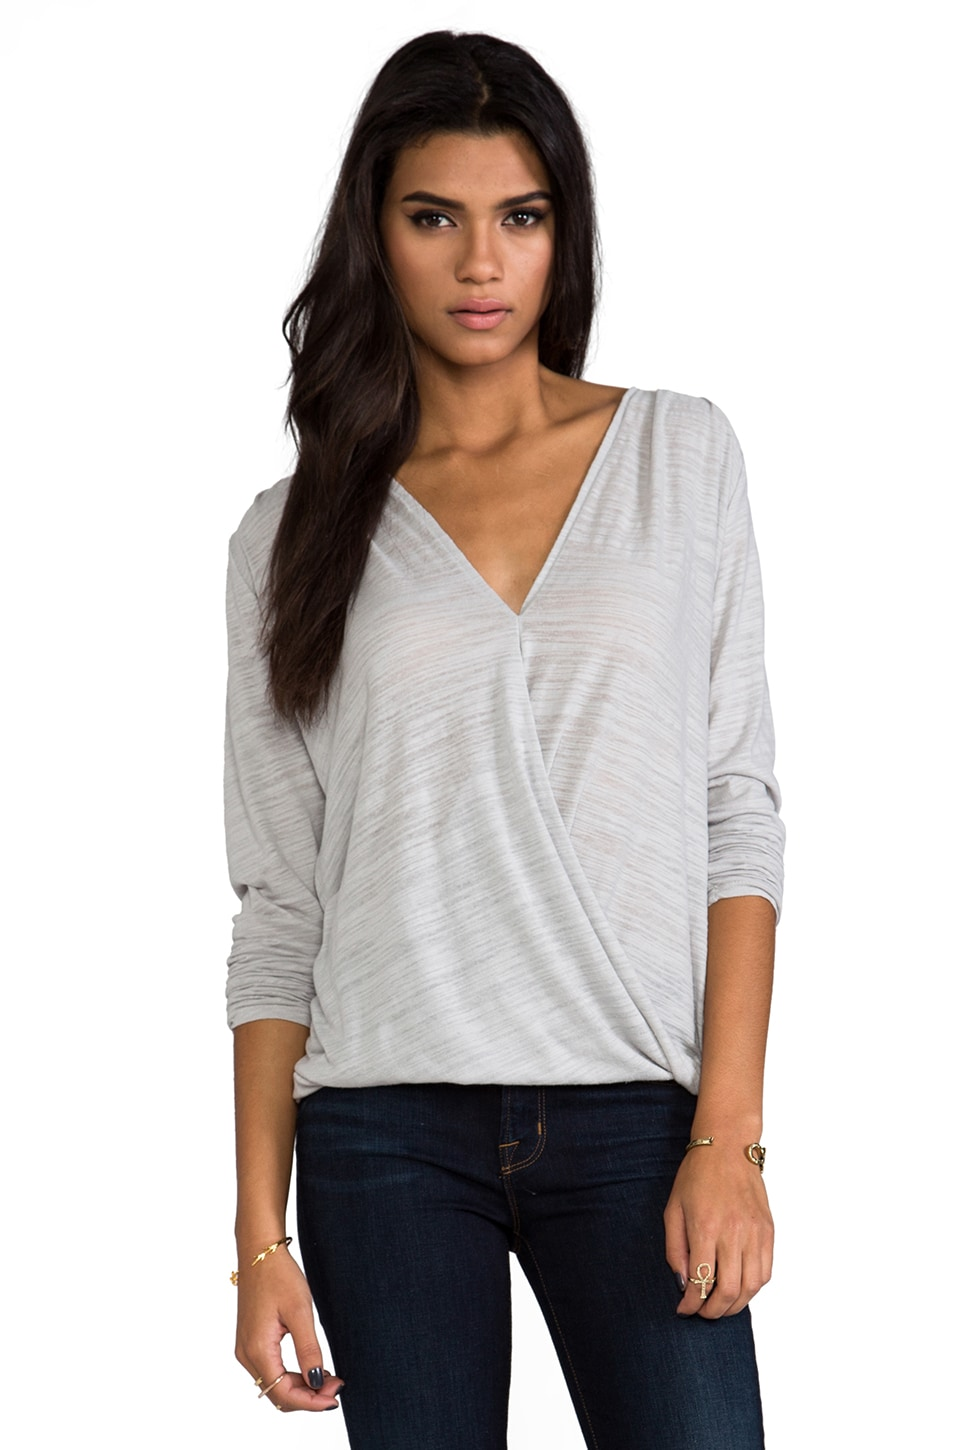 Velvet by Graham & Spencer Velvet Soft Texture Jeanne Wrap Top in Clove